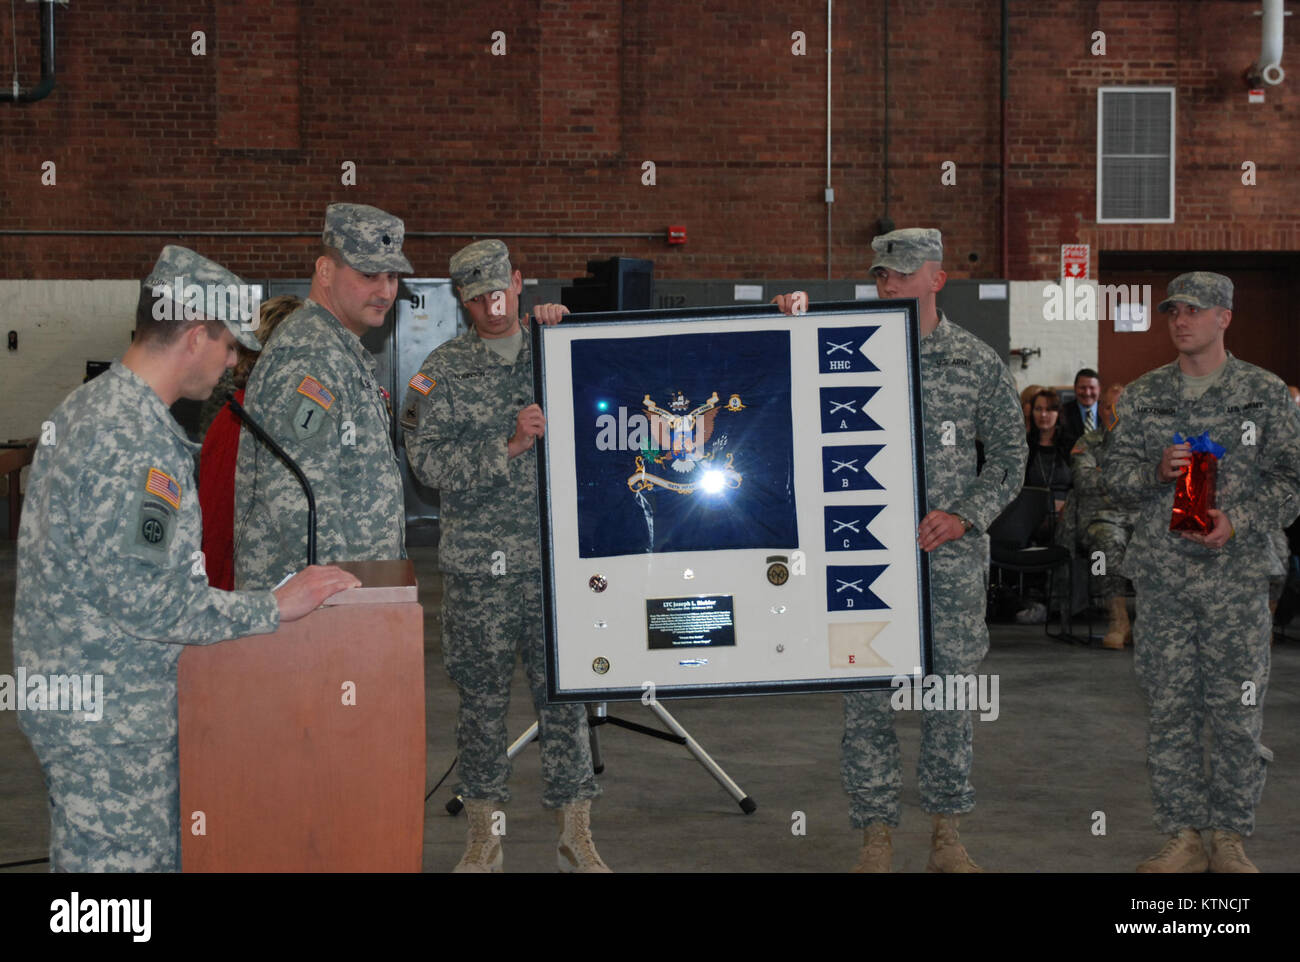 UTICA, N.Y. – Soldiers of the New York Army National Guard's 2nd Battalion, 108th Infantry present a unit gift representing Stock Photo